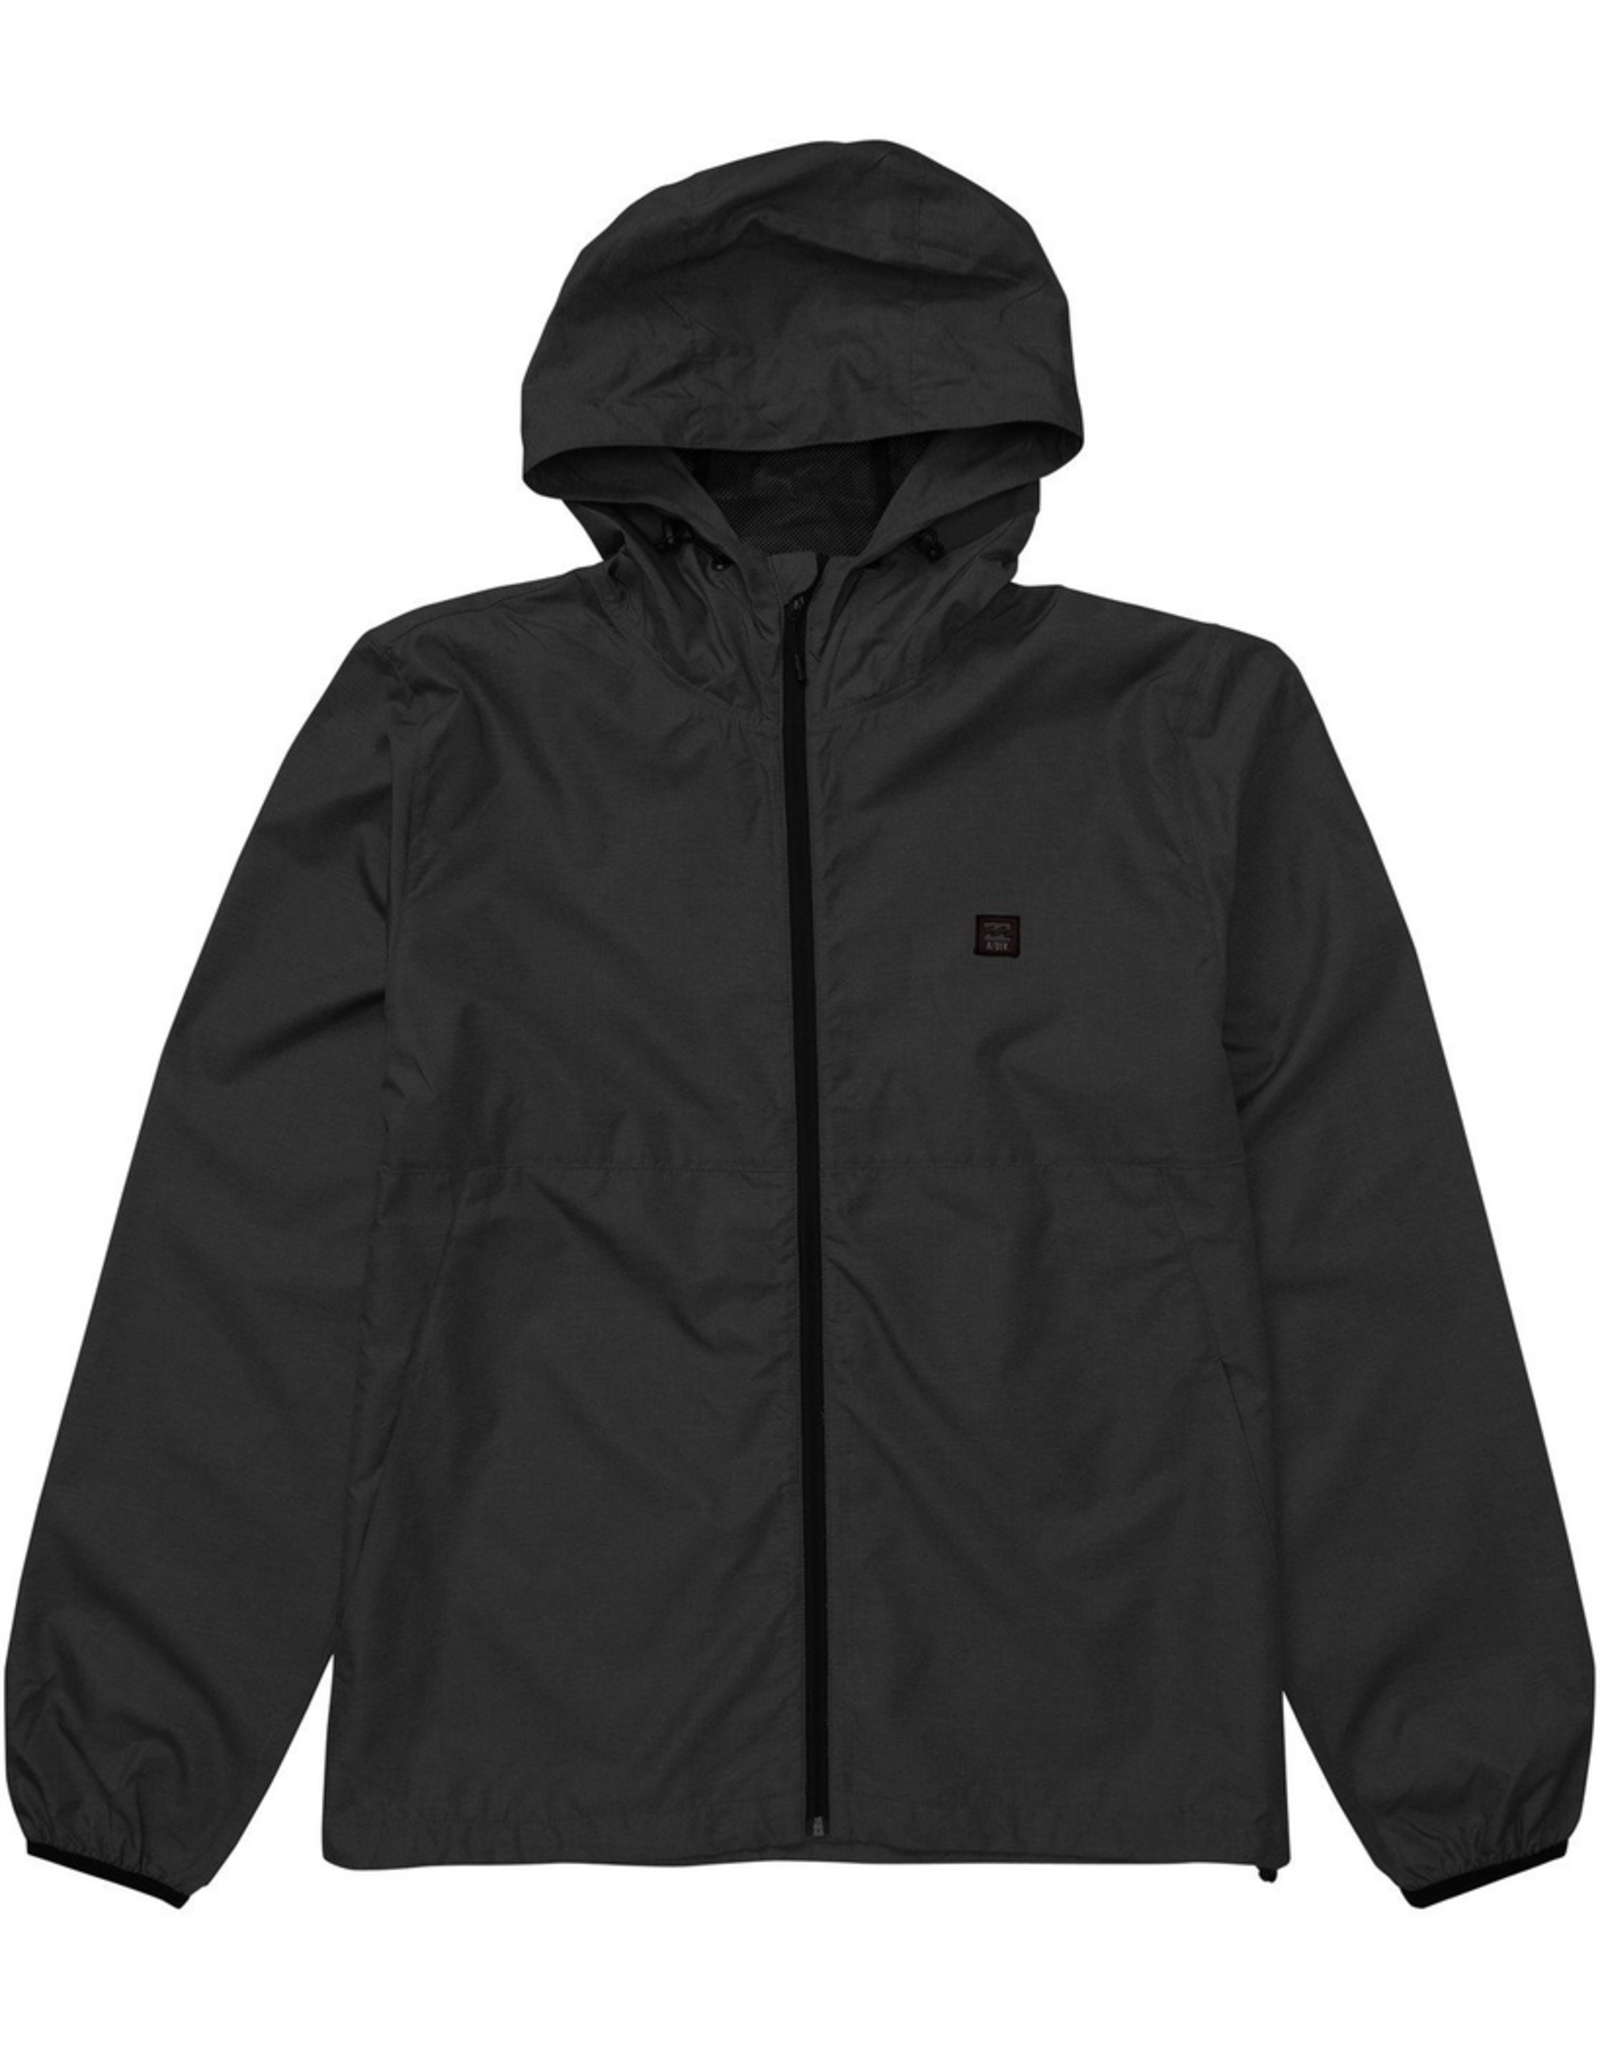 BILLABONG TRANSPORT WINDBREAKER JACKET